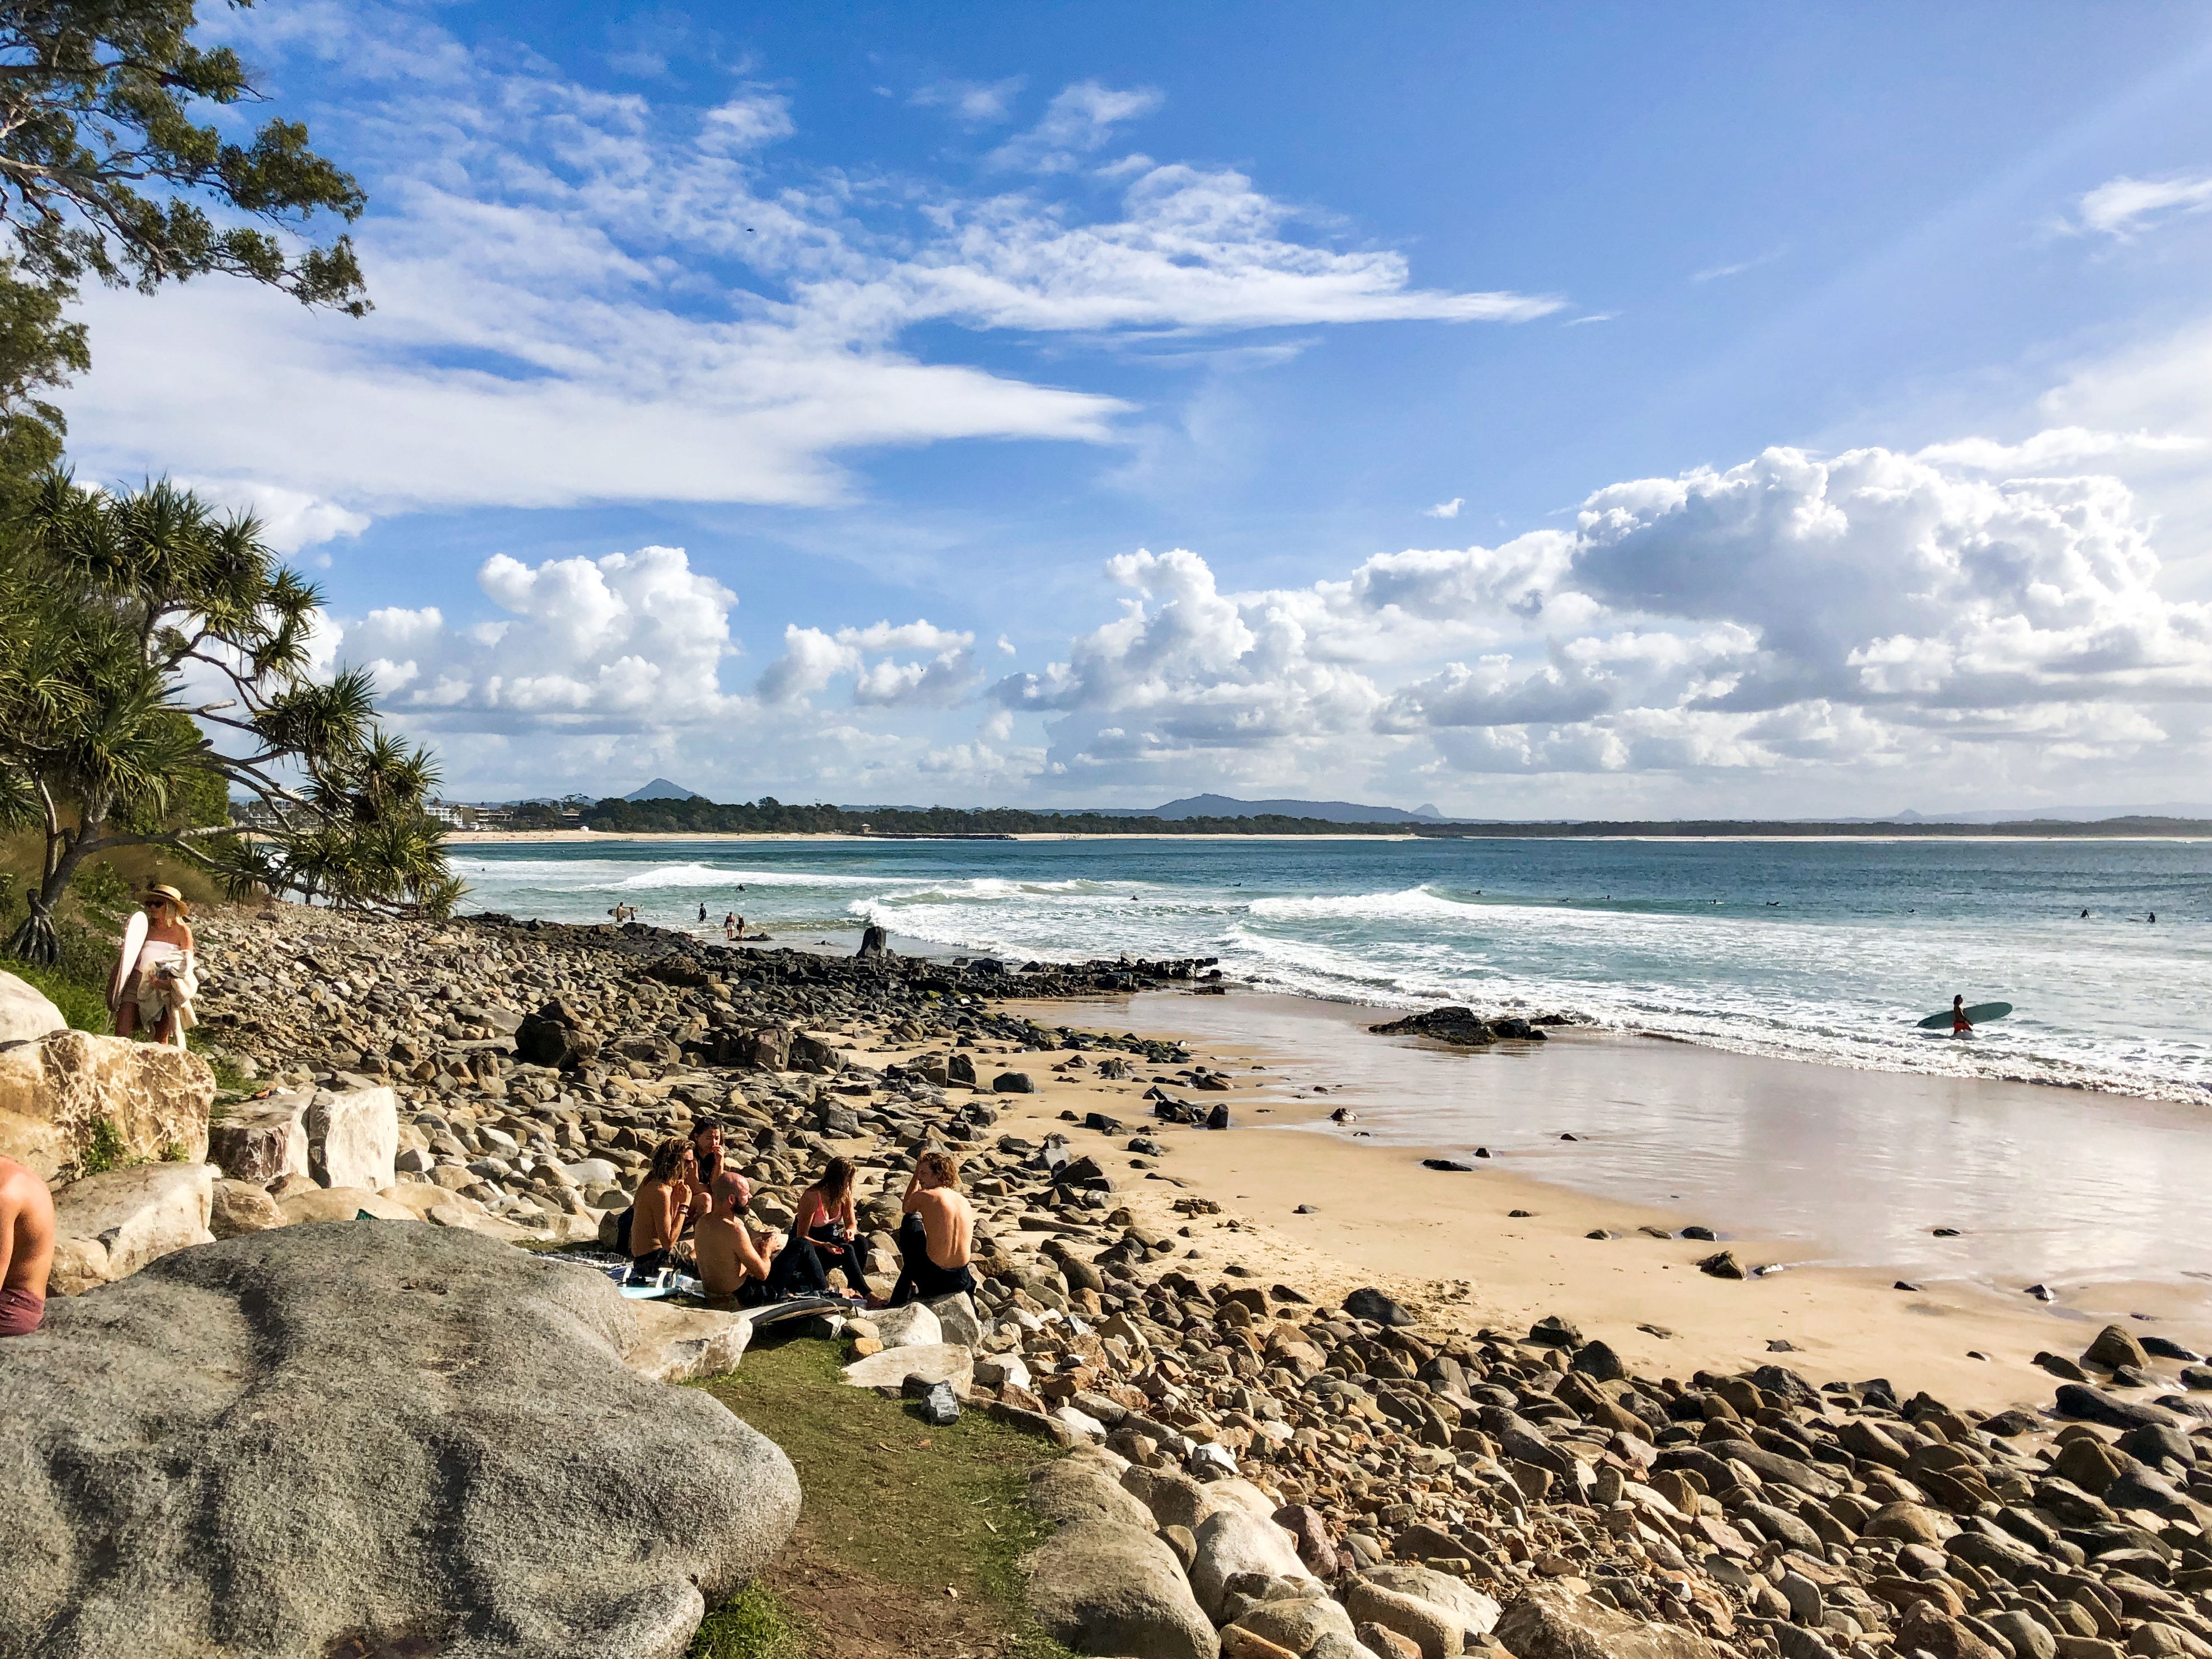 Noosa is so photogenic and very popular with surfers